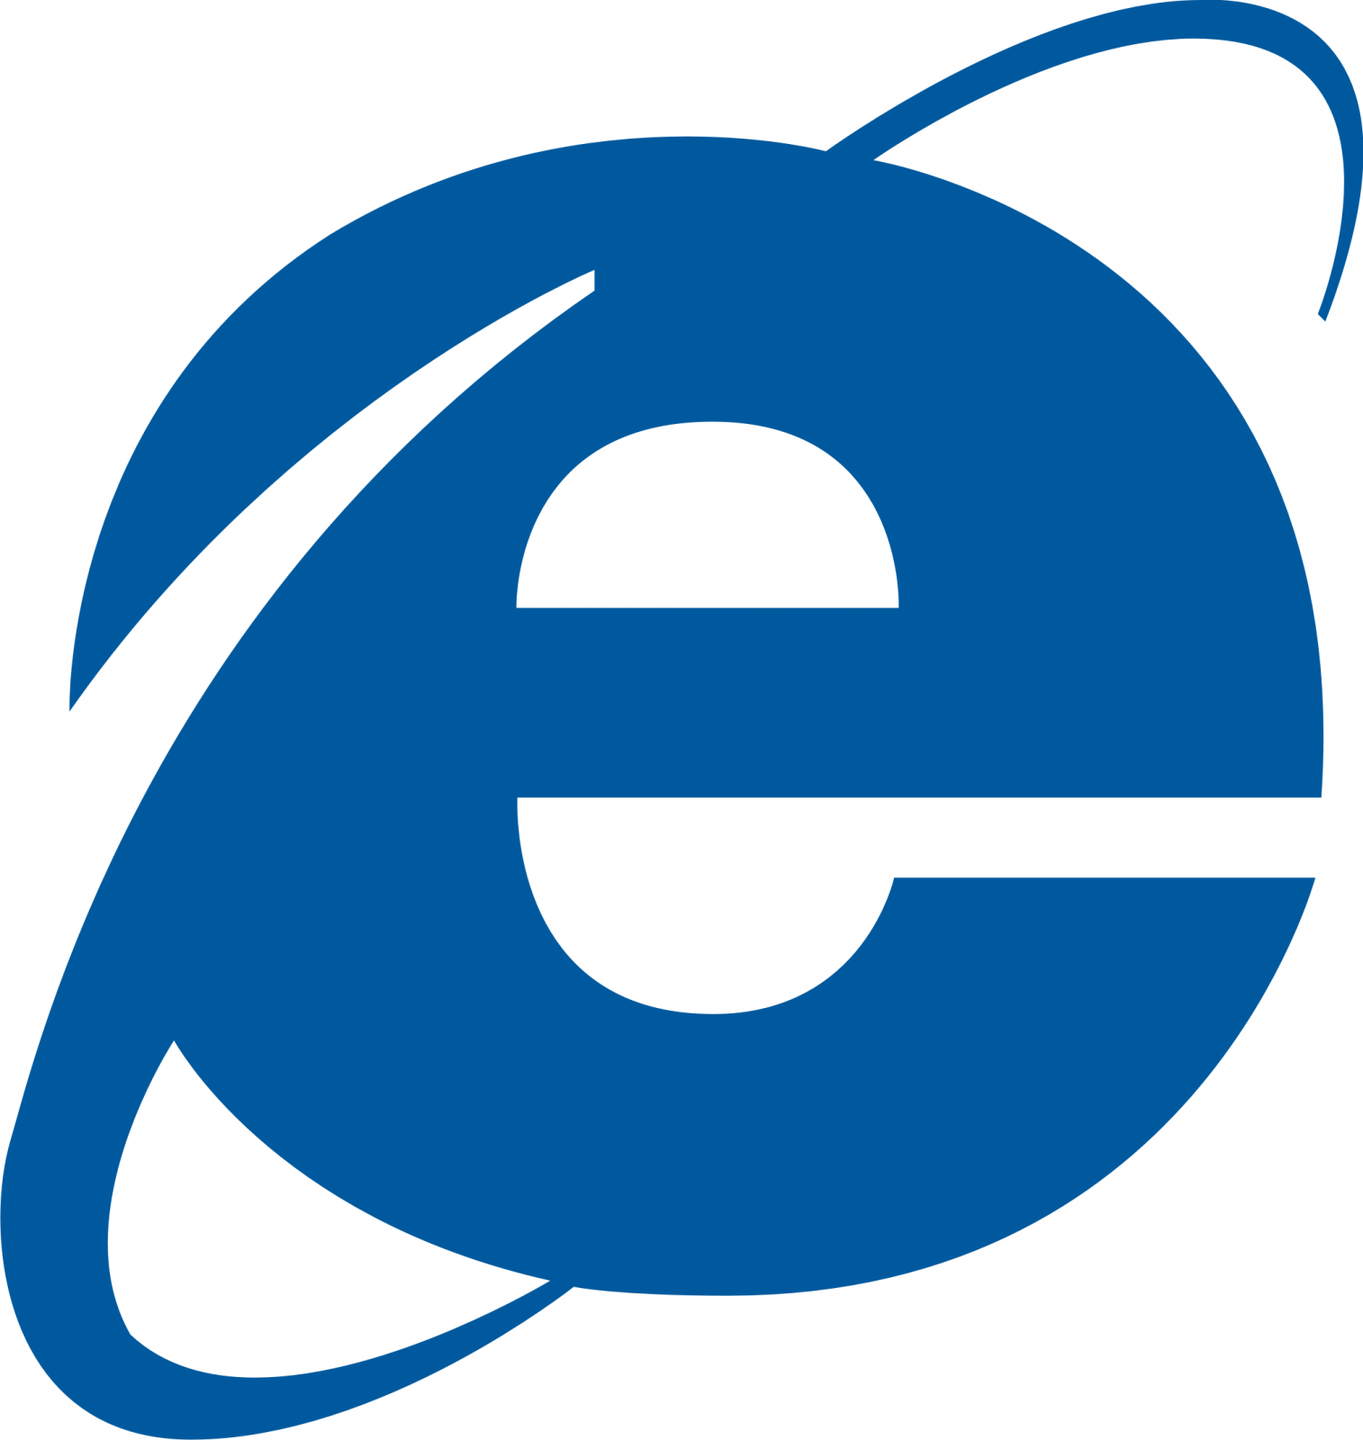 How to turn compatibility view off using Internet Explorer.